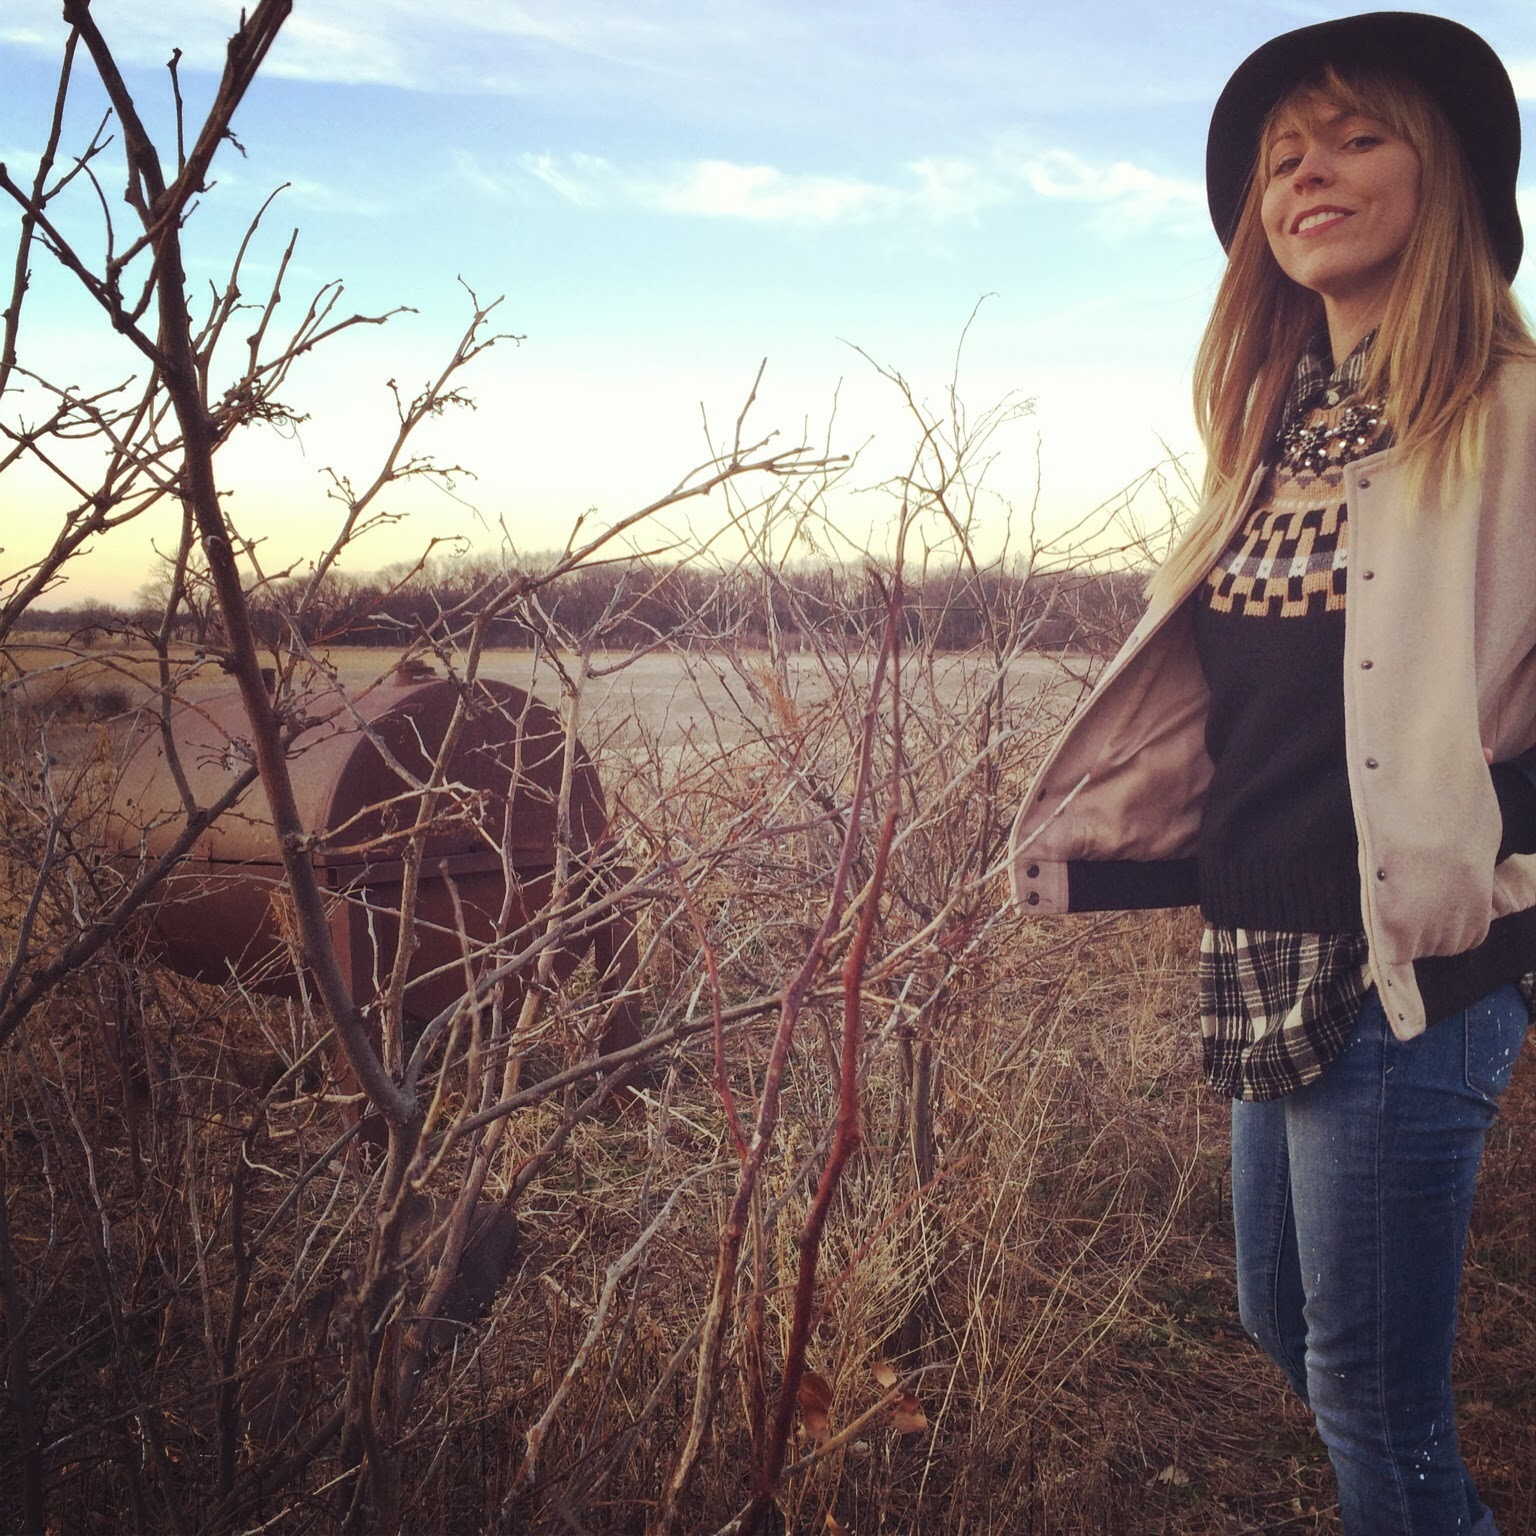 Nebraska, cornfield, Madewell, Topshop, Plaid, Denim, Fashion, Casual, Roots, Blonde